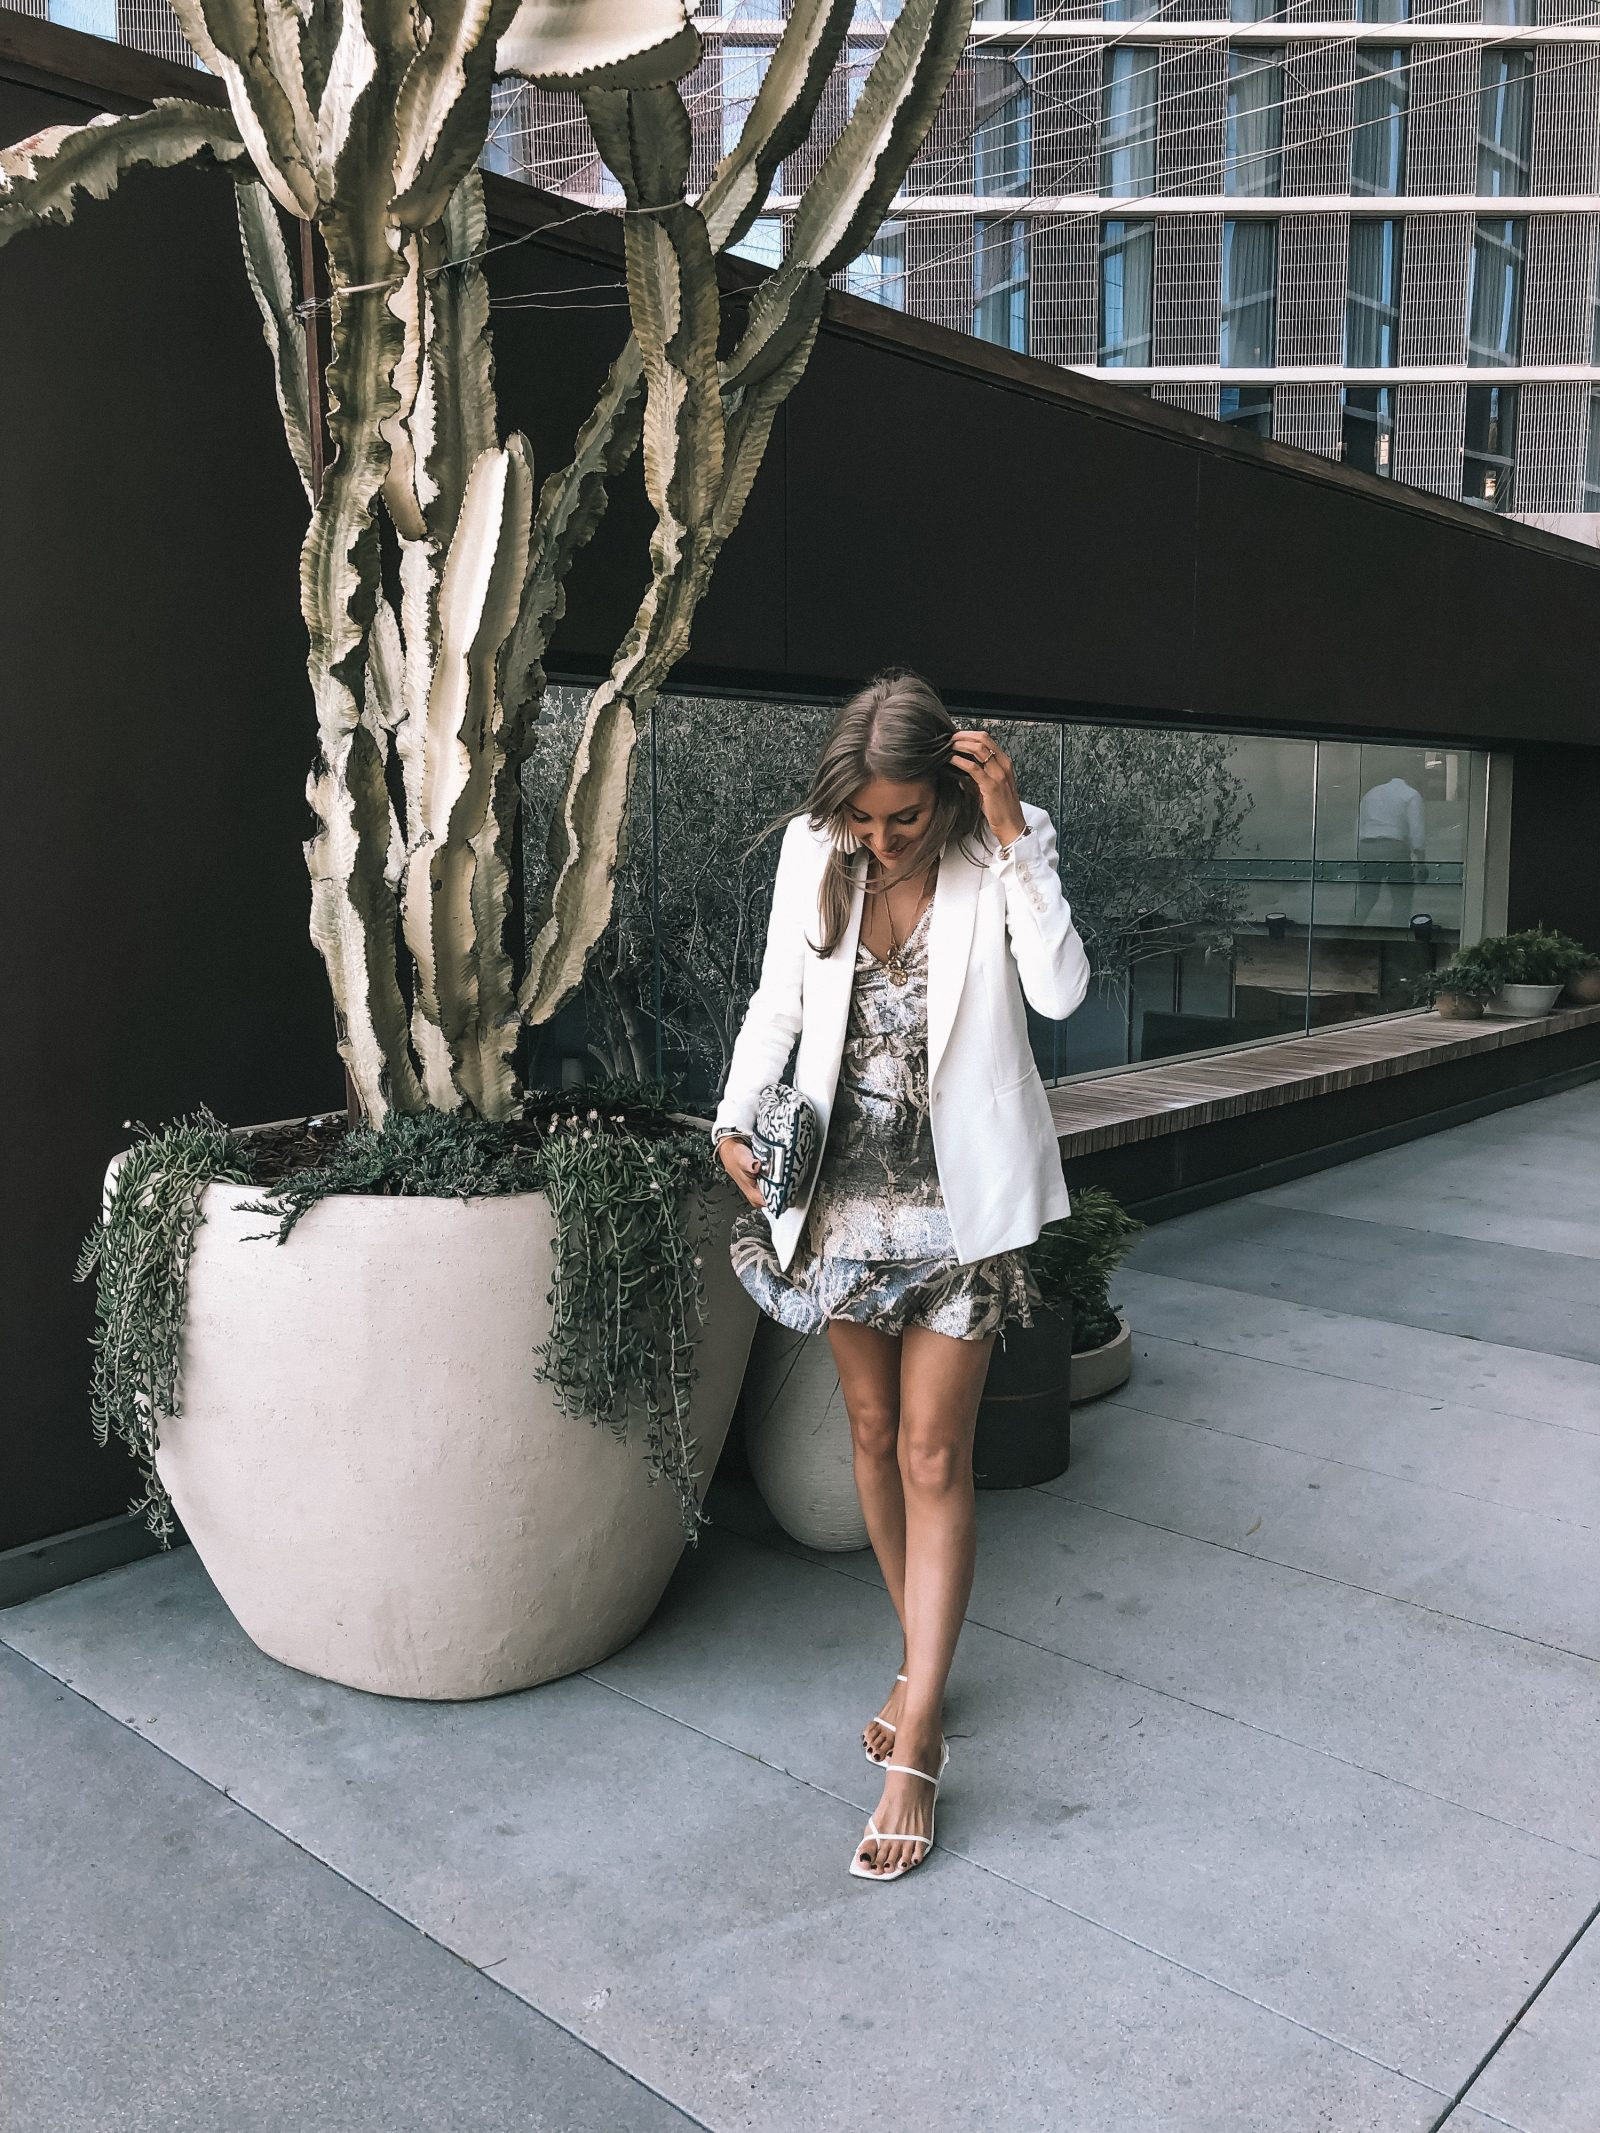 H&M Conscious Collection Spring Outfit in LA - smart Casual